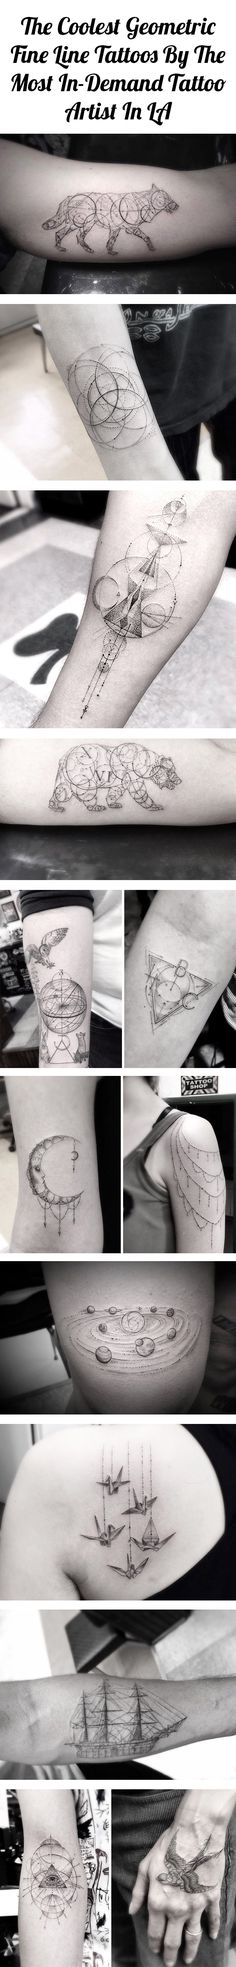 The coolest geometric fine line tattoos by the most in-demand tattoo artist in LA